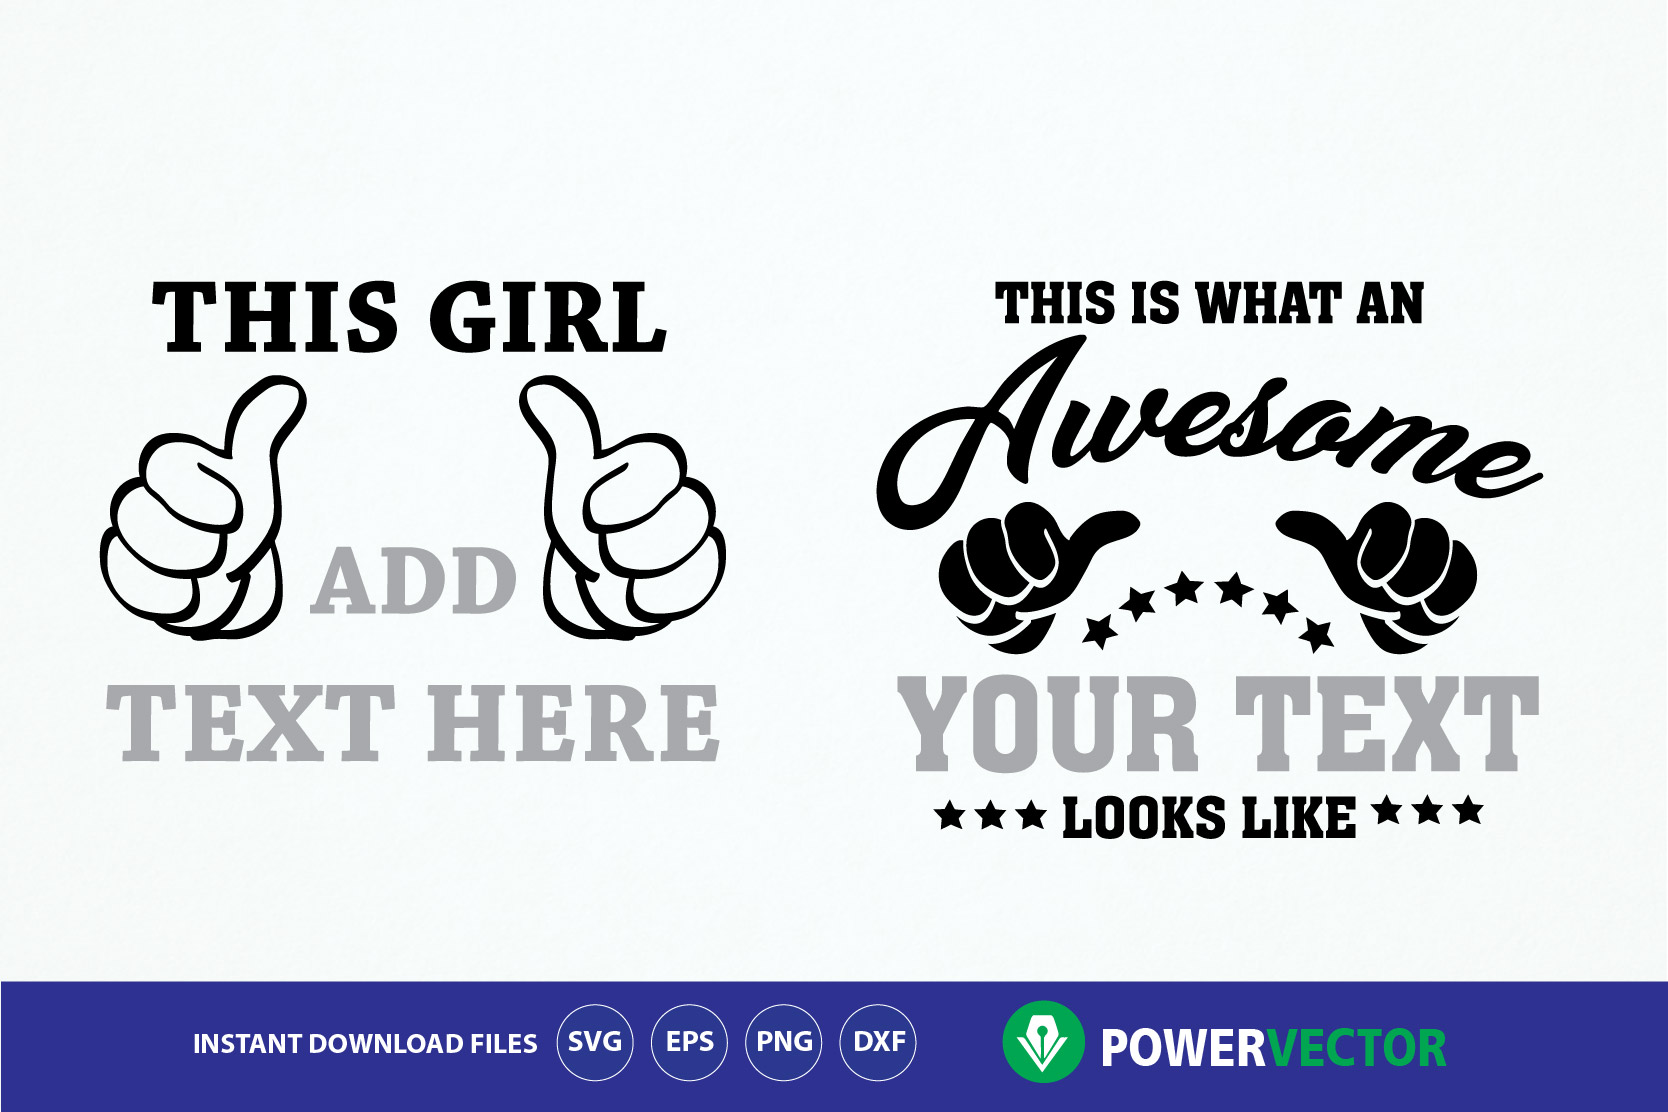 Download Free This Is What An Awesome Looks Like Thumbs Graphic By for Cricut Explore, Silhouette and other cutting machines.